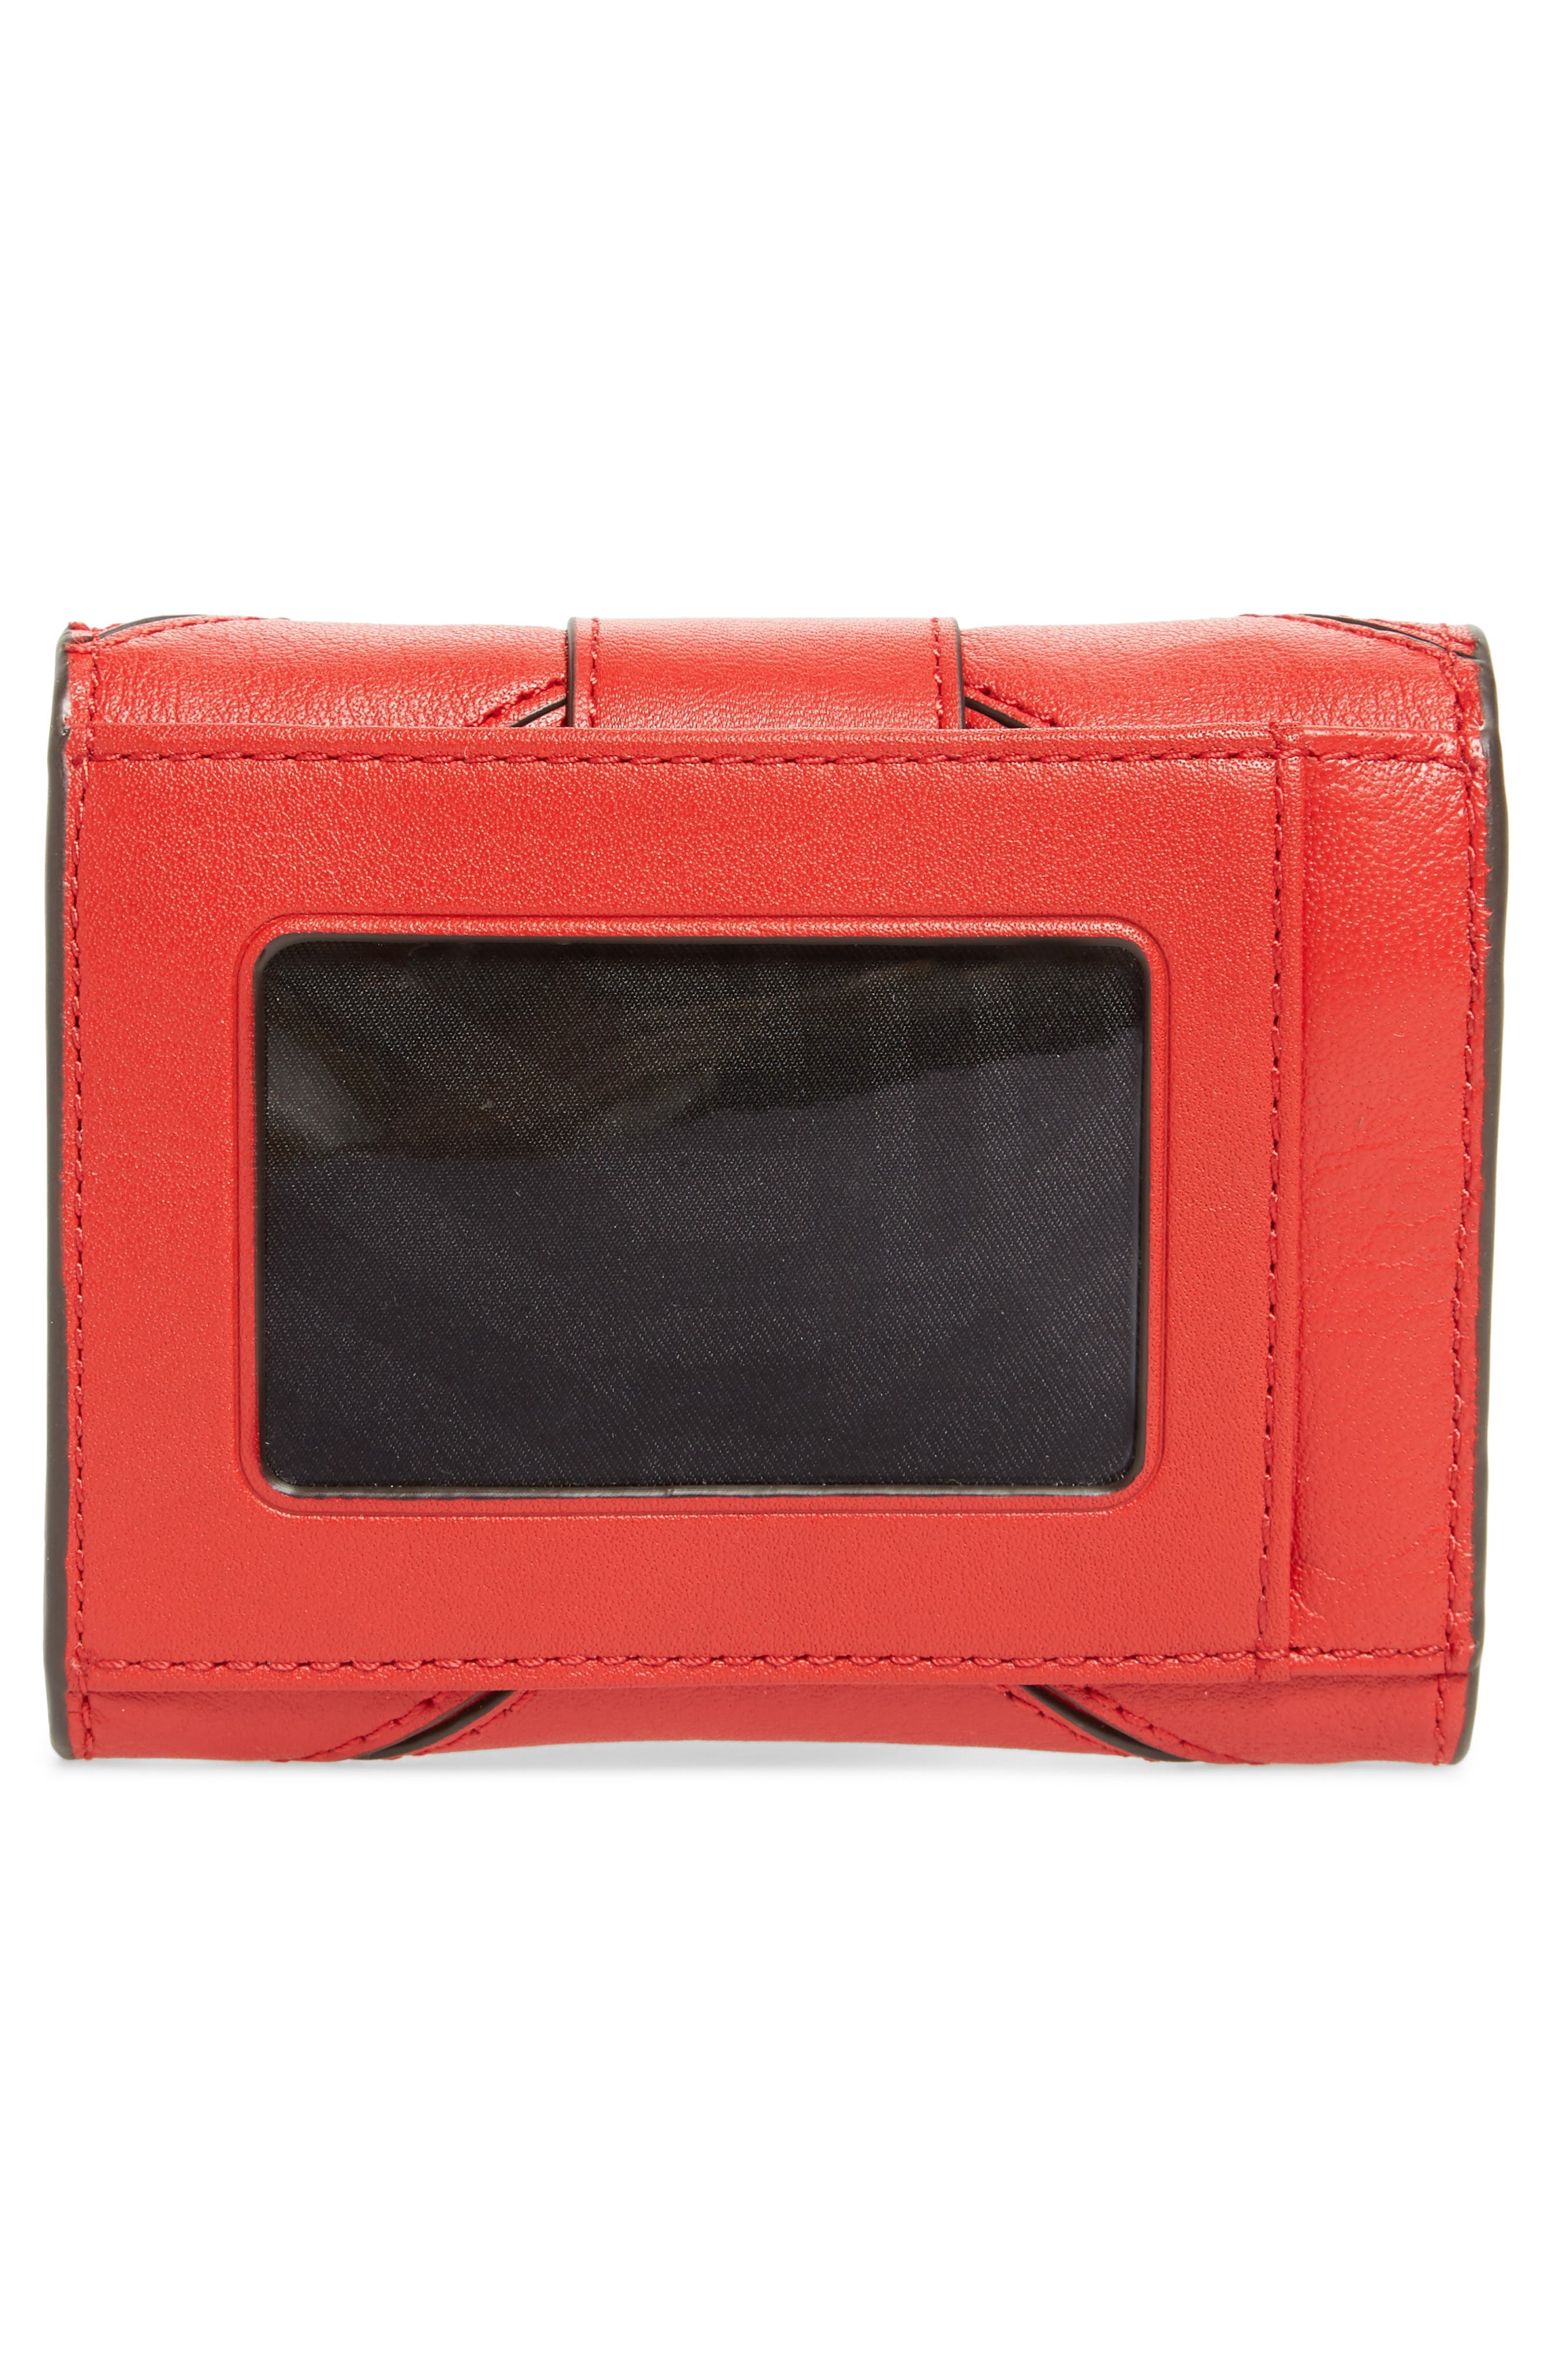 Love Lock Leather Wallet,                             Alternate thumbnail 3, color,                             Carnation Red